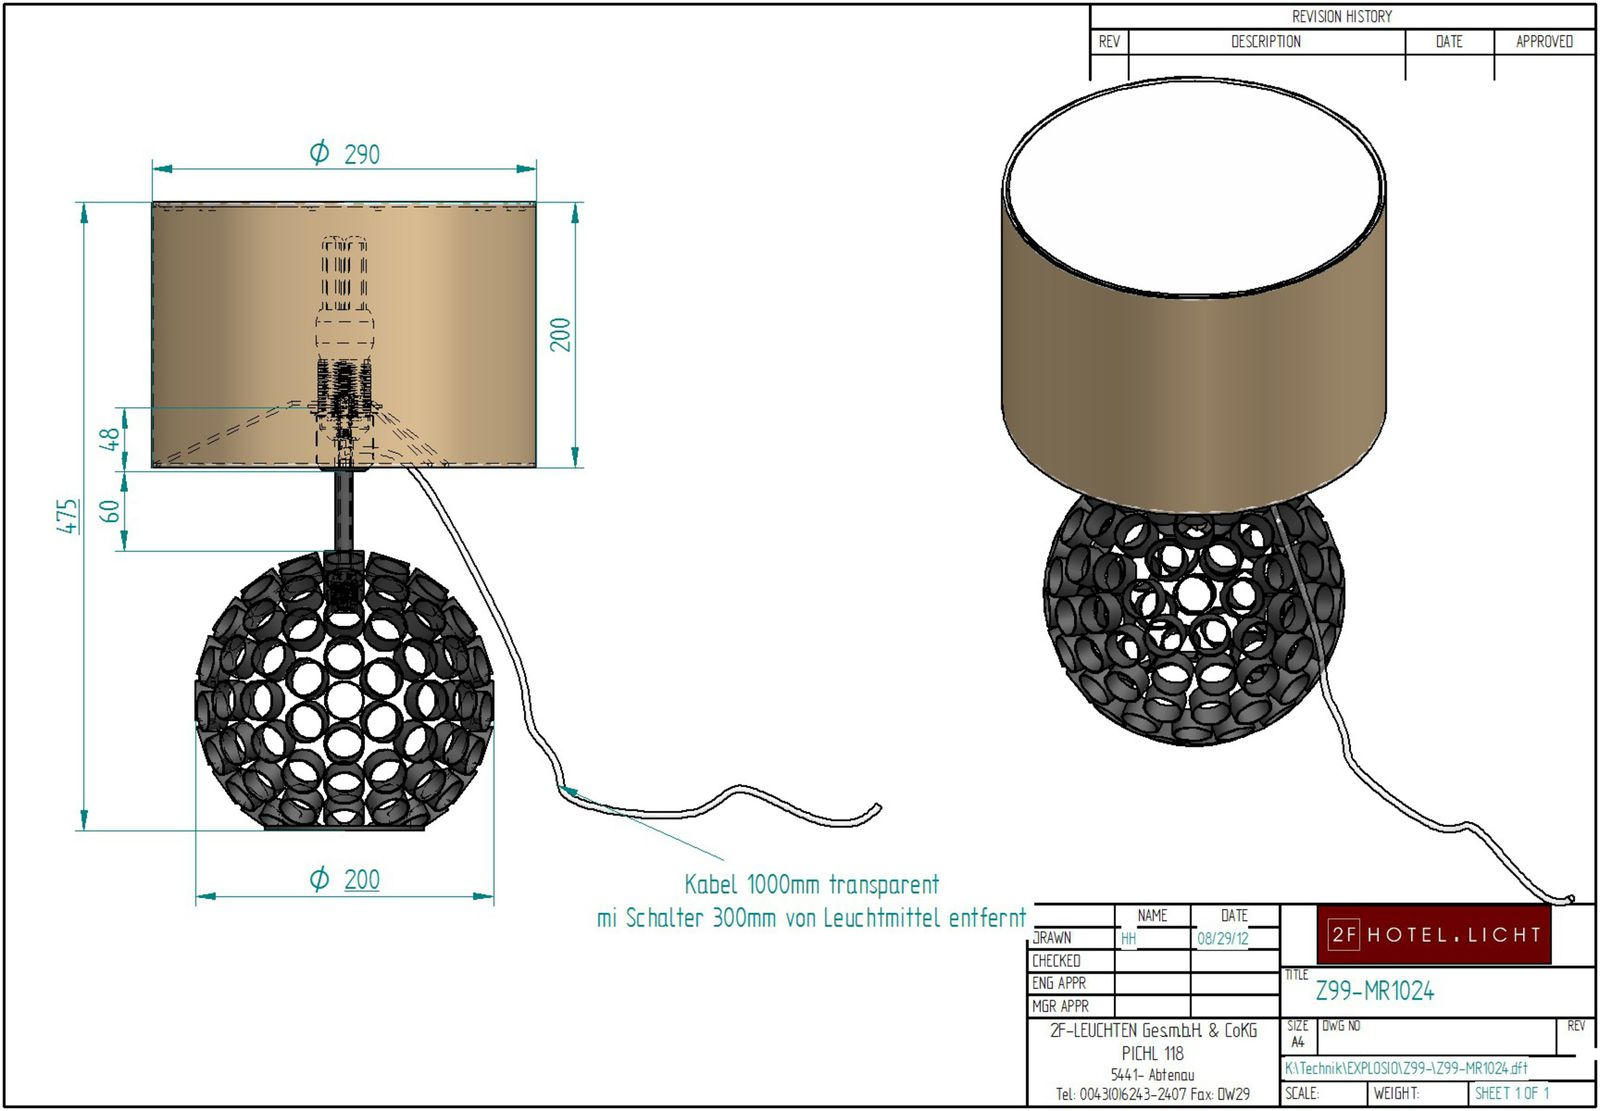 Table lamp H=475 Ø=290 technical details: 1xE27 40W + 1xG9 40W